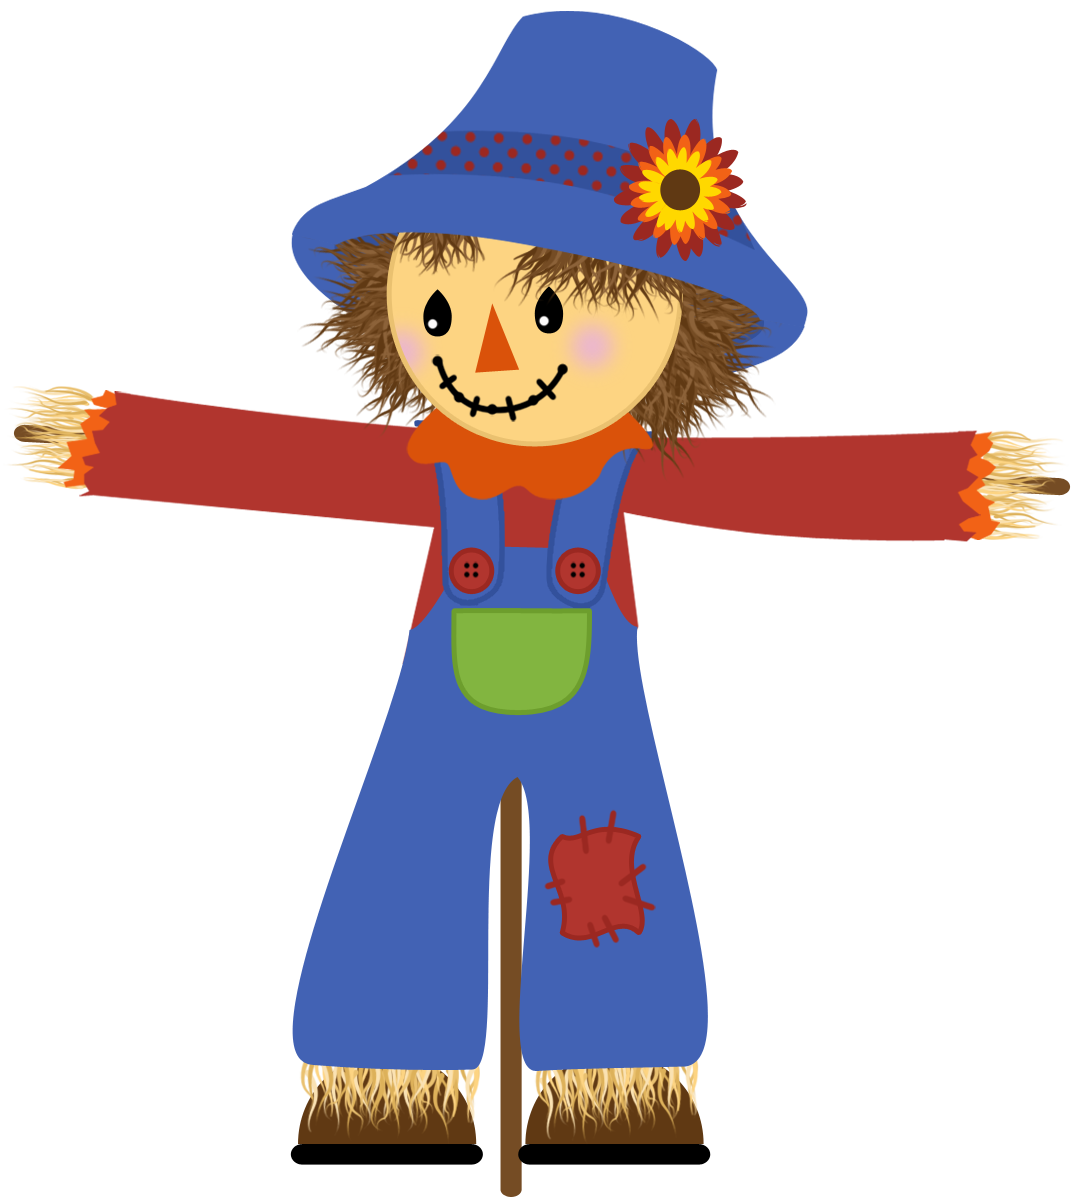 Scarecrow transparent lady. Scare crow clipart